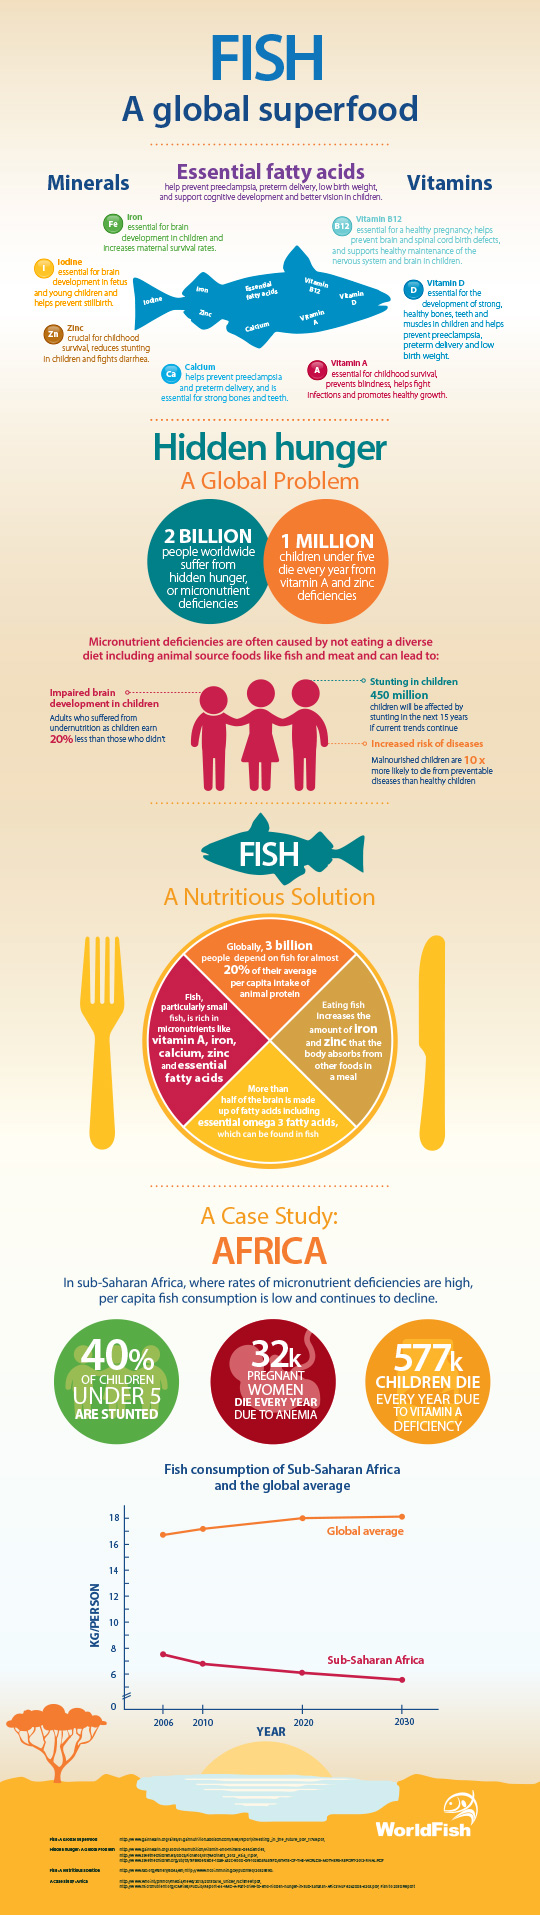 Fish a Global Superfood